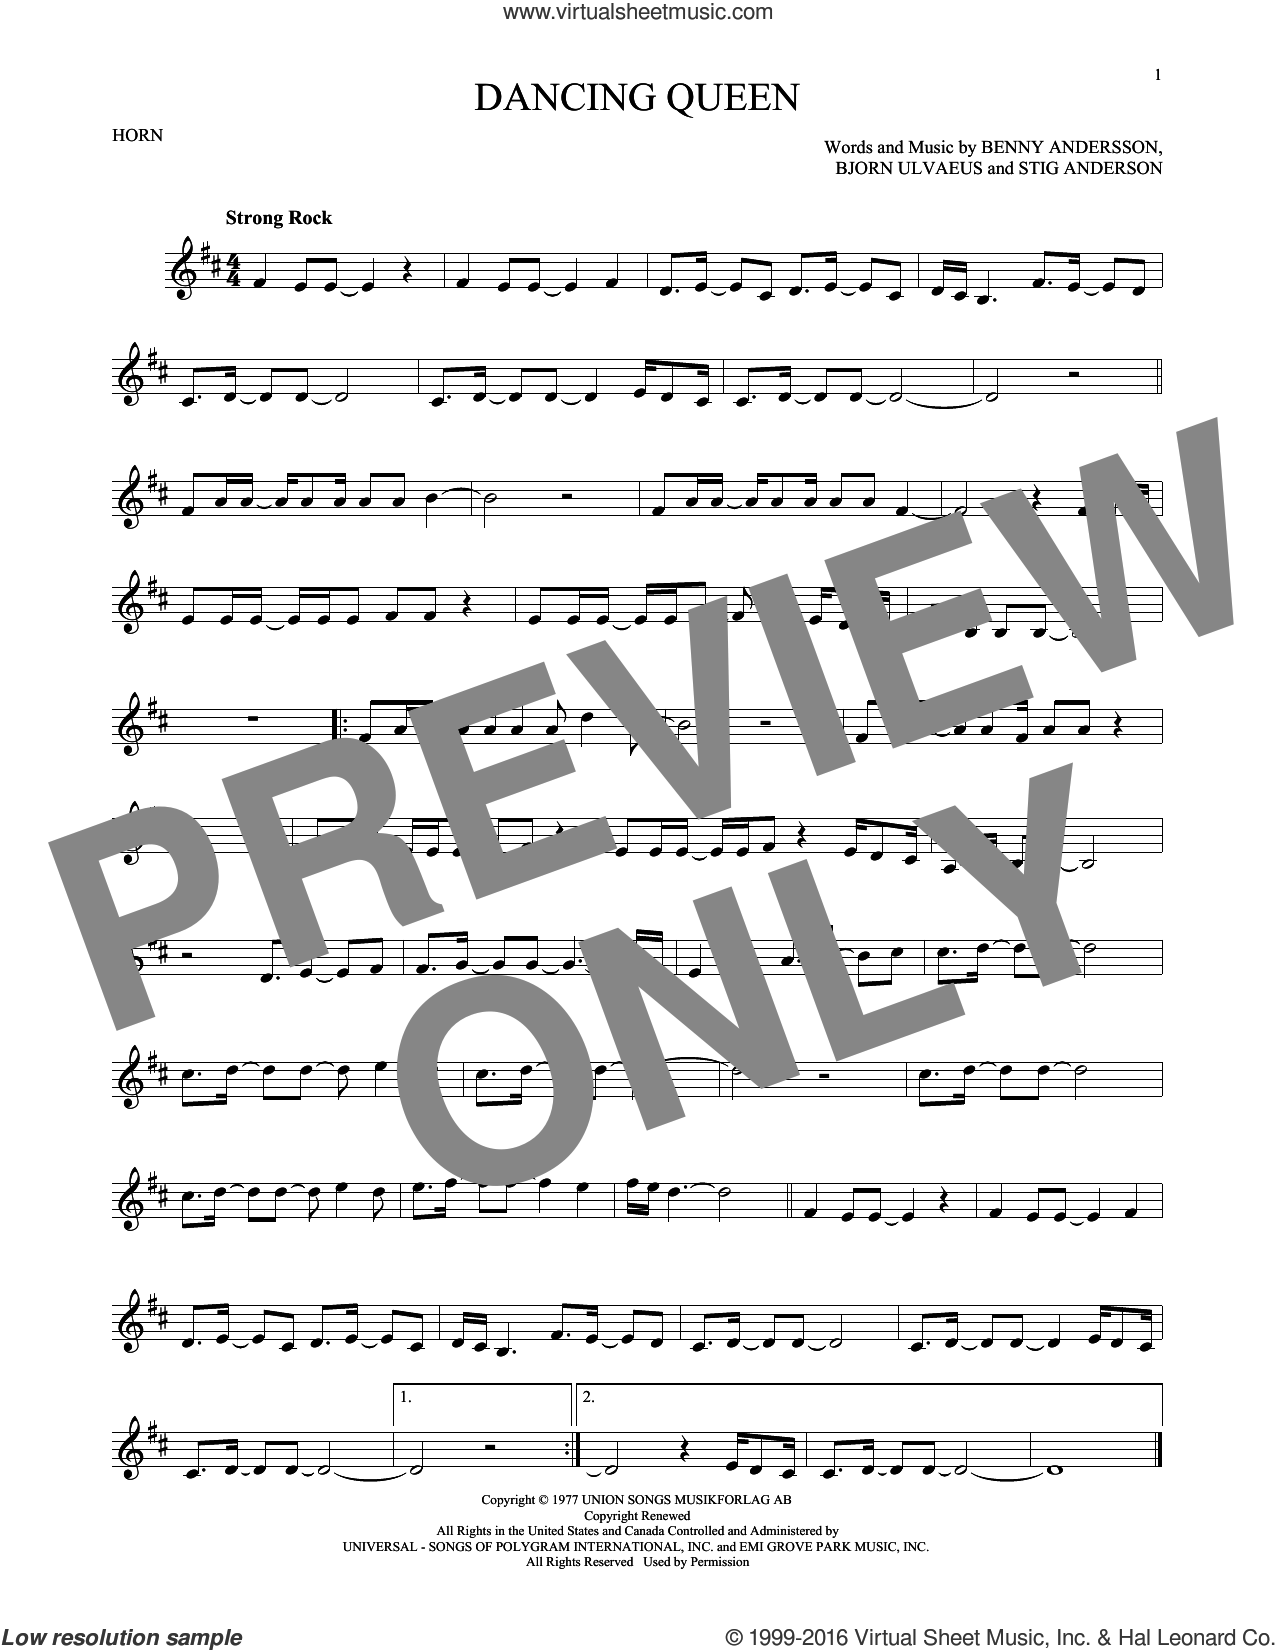 Dancing Queen sheet music for horn solo by ABBA, Benny Andersson, Bjorn Ulvaeus and Stig Anderson, intermediate skill level